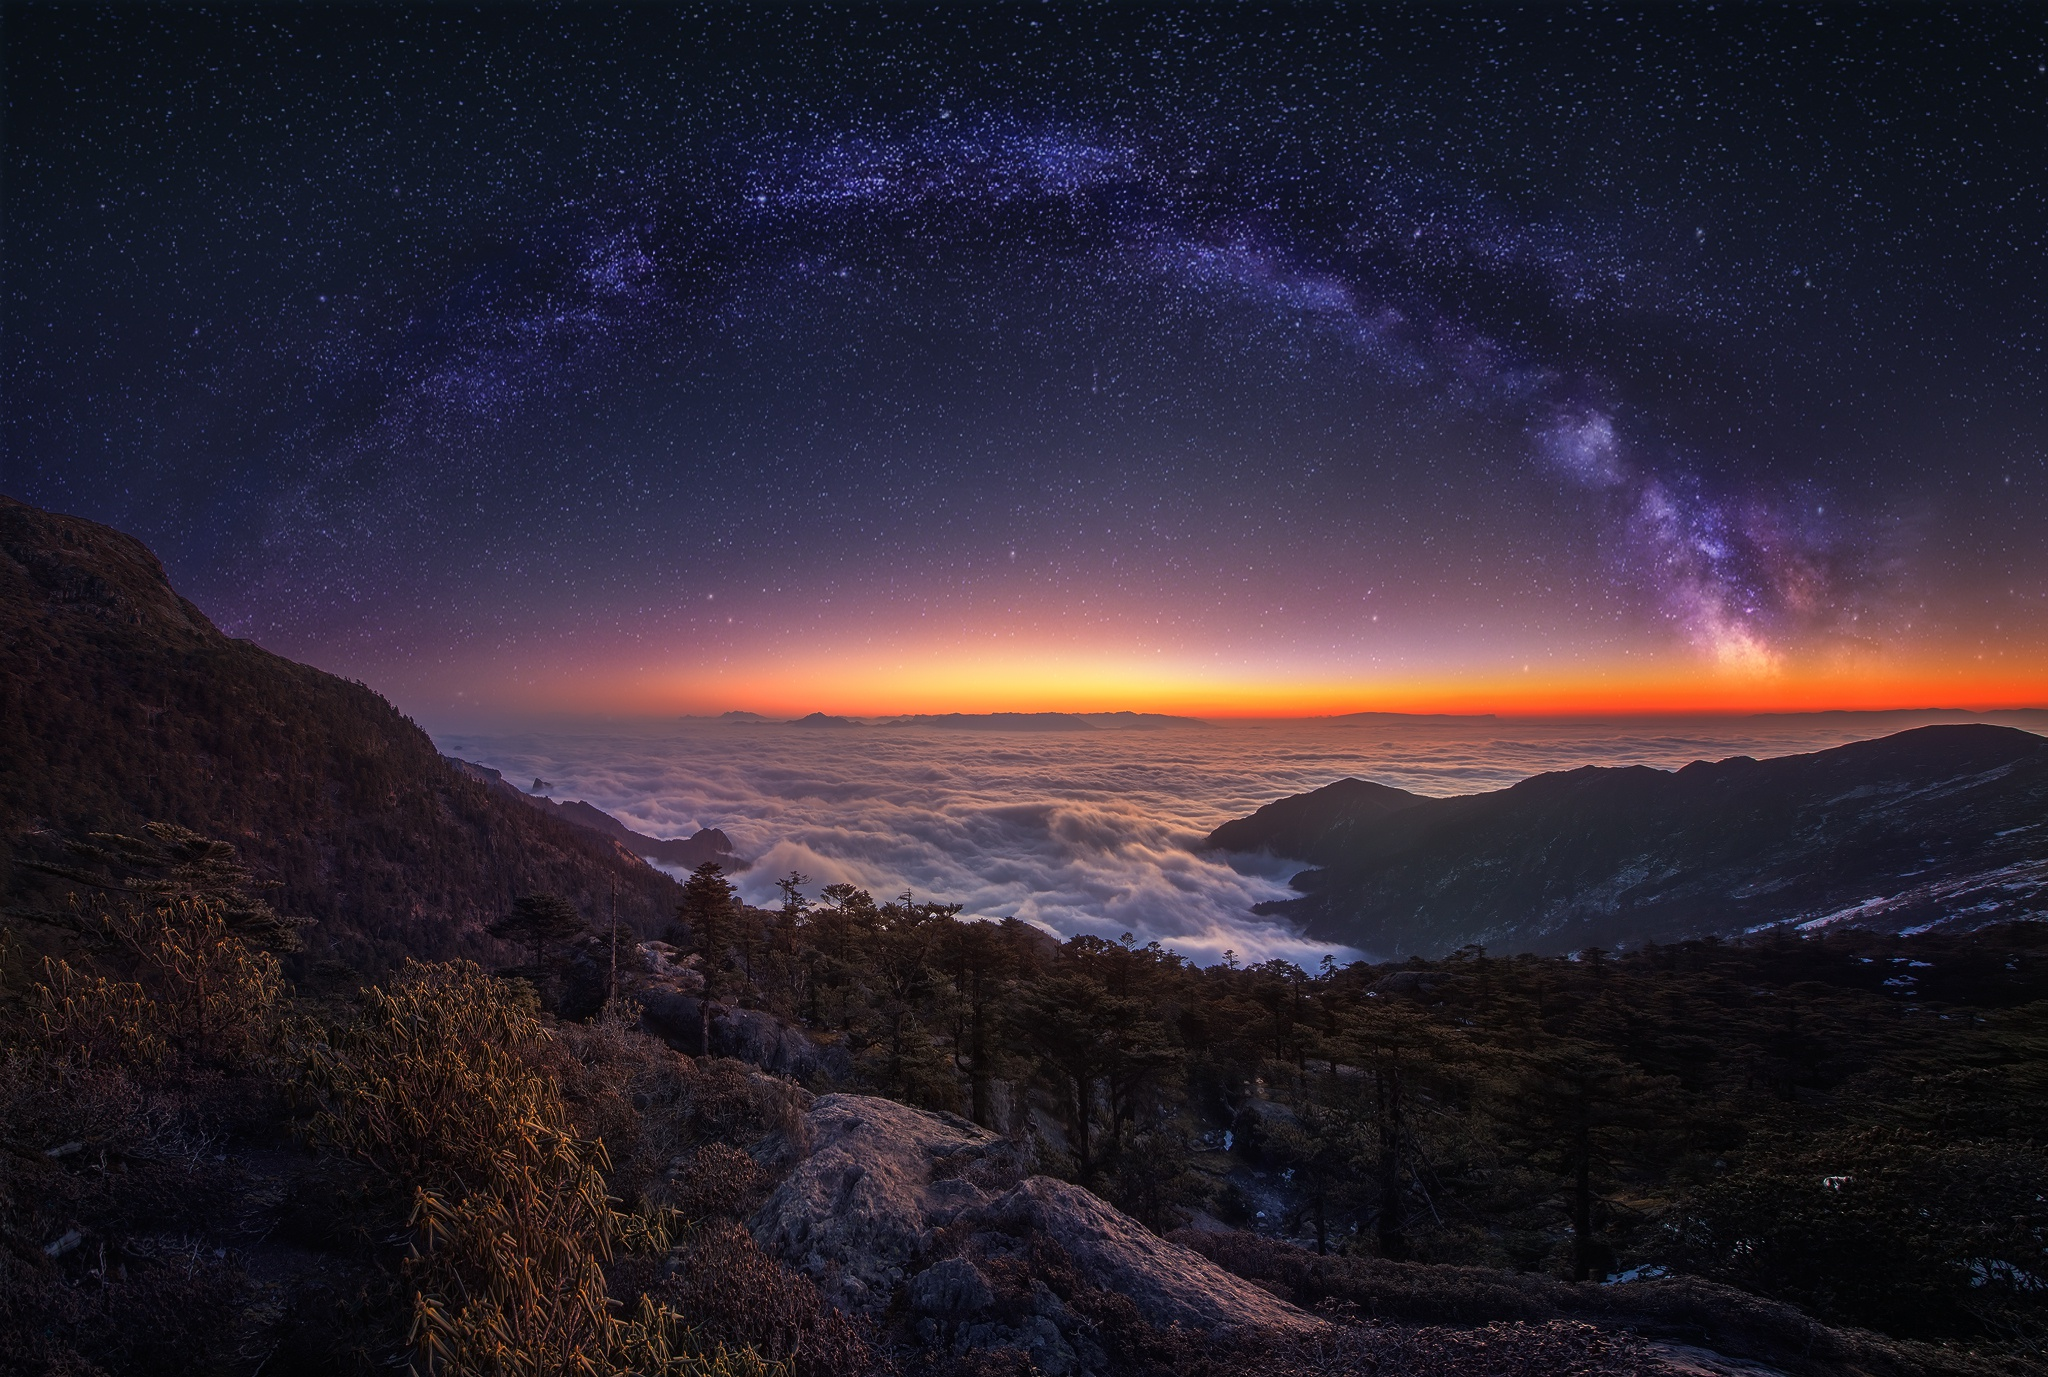 4k Night Sky Wallpaper 37 Images: 3840x2400 Cloud Landscape Milky Way Nature Night Panorama